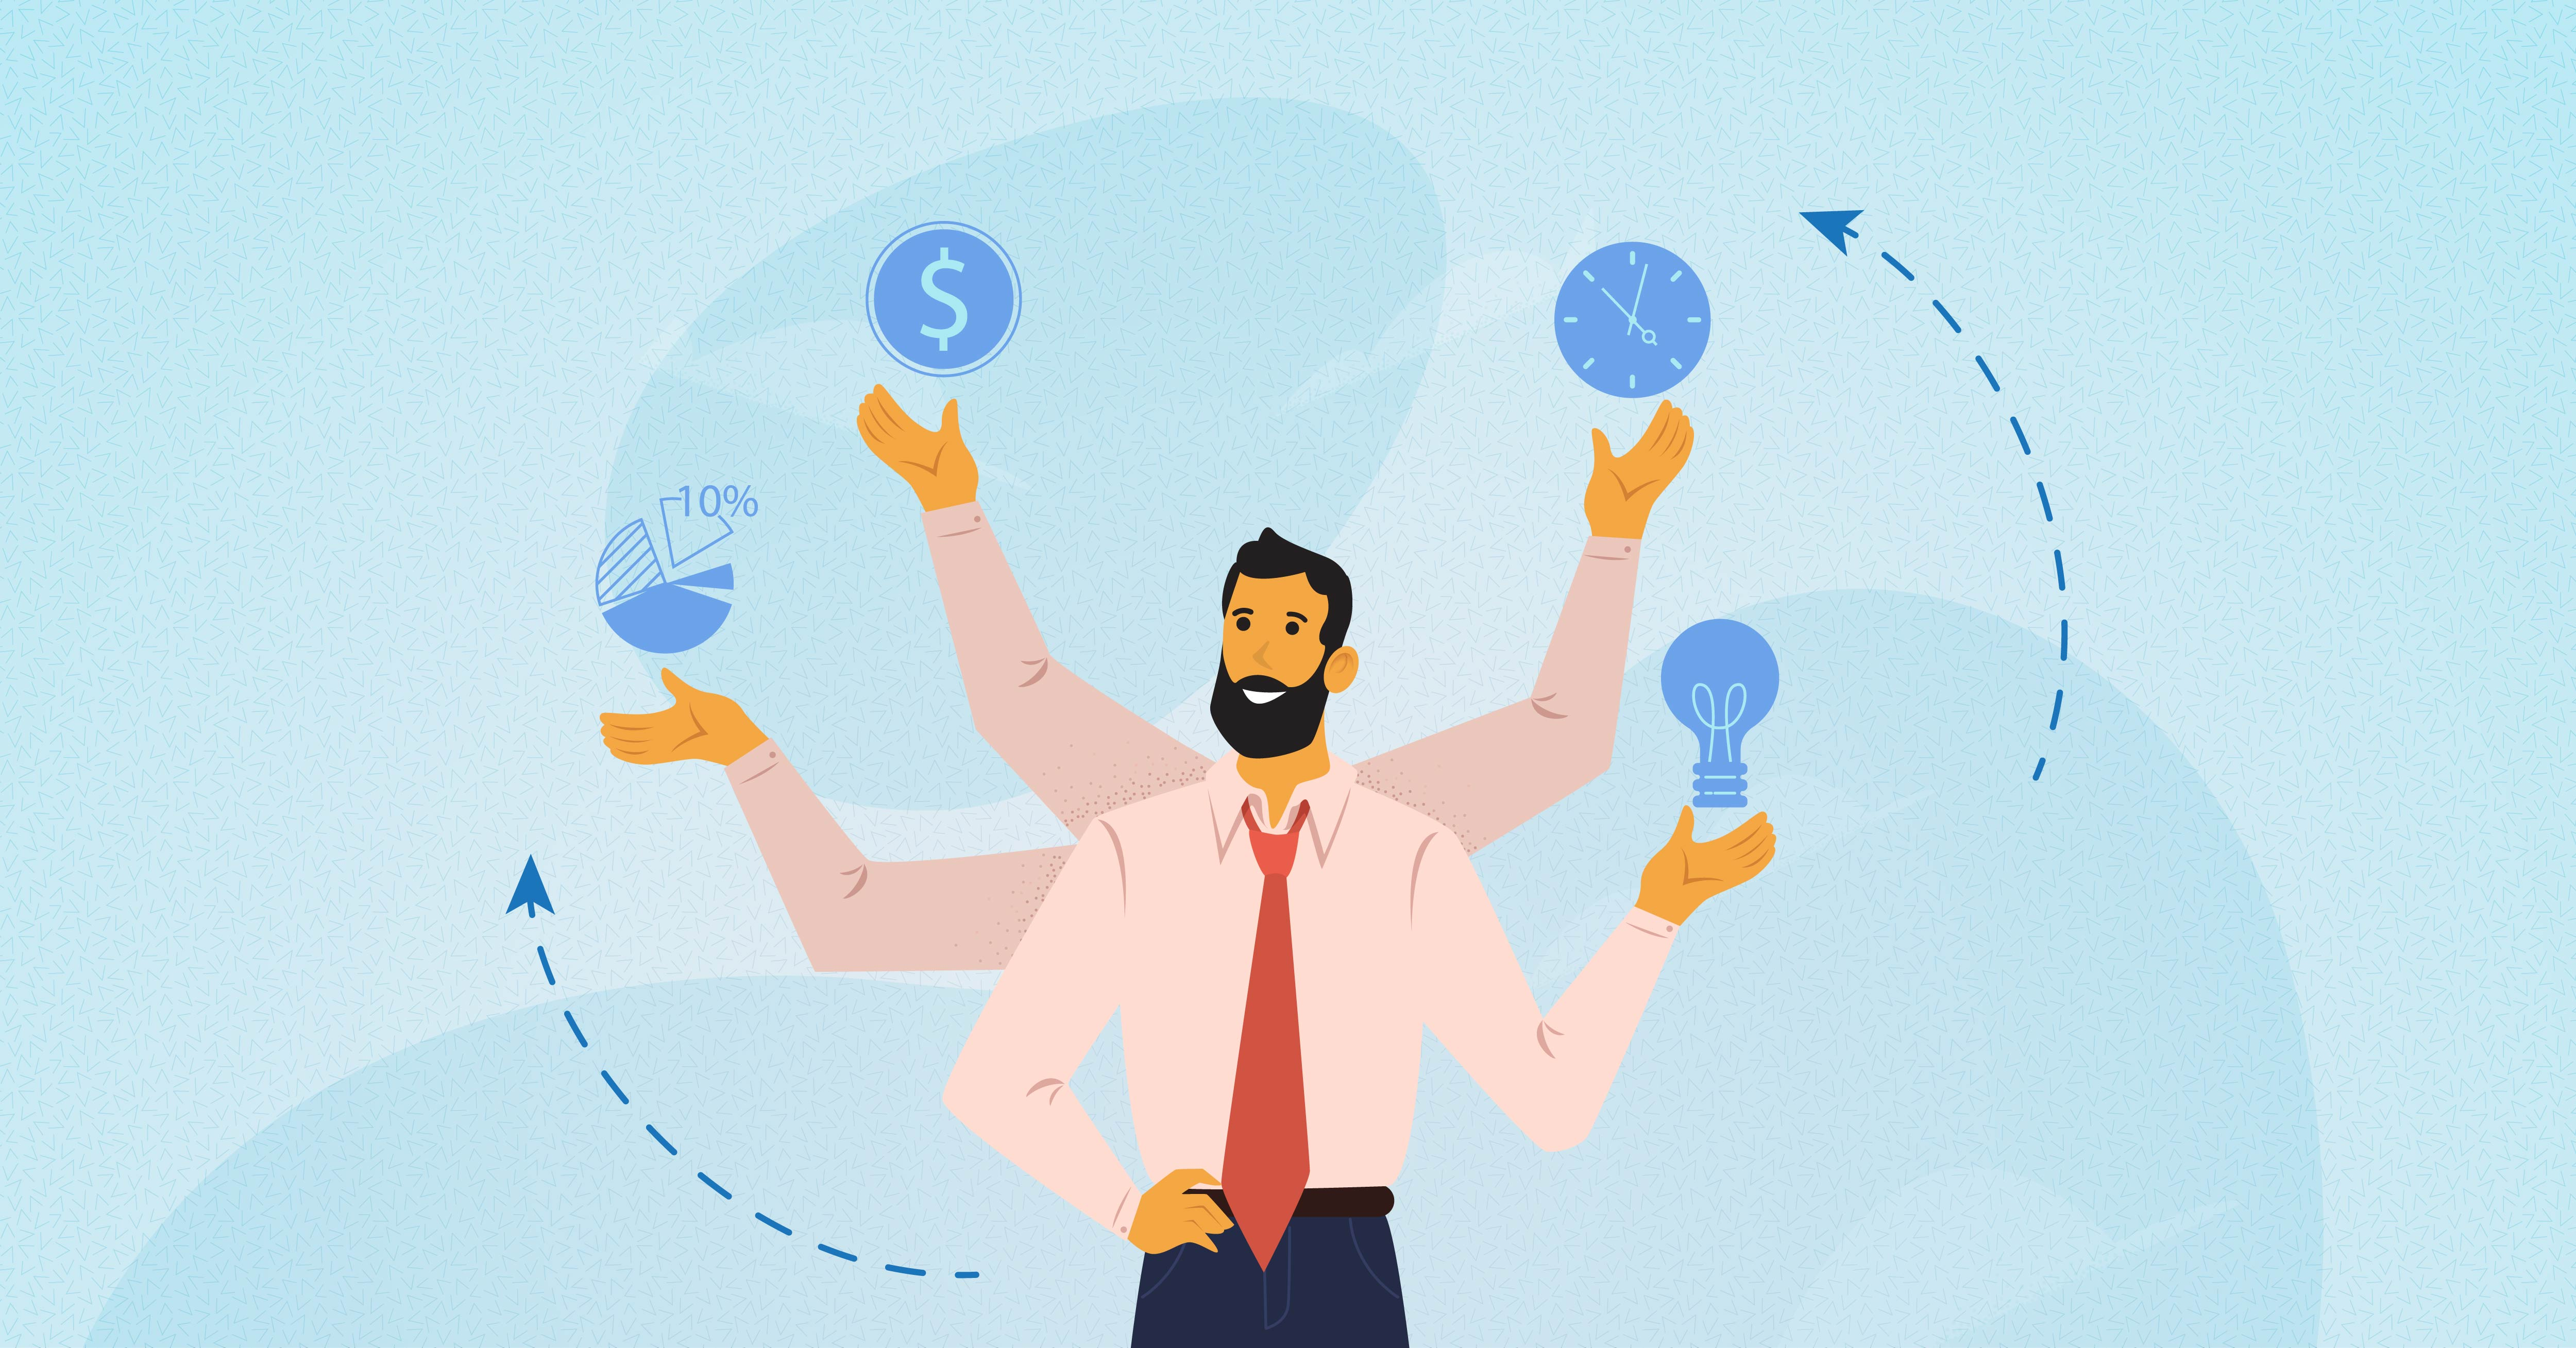 An illustration of a project manager juggling several different tasks, including budgeting, scheduling and resource management.